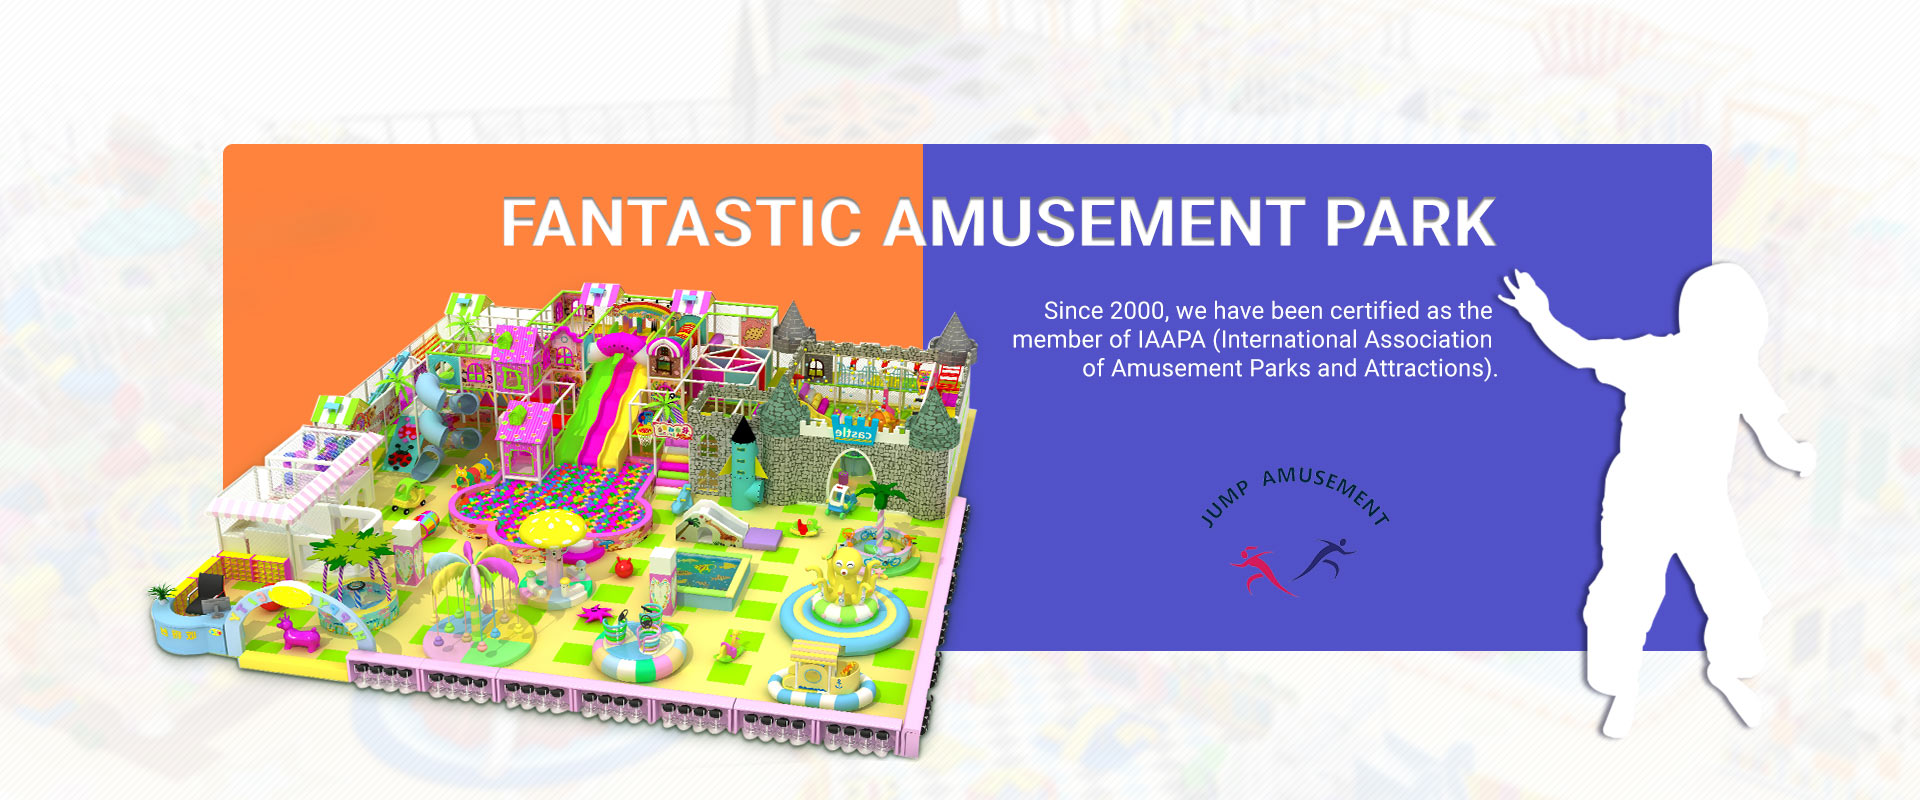 Fantastic amusement park